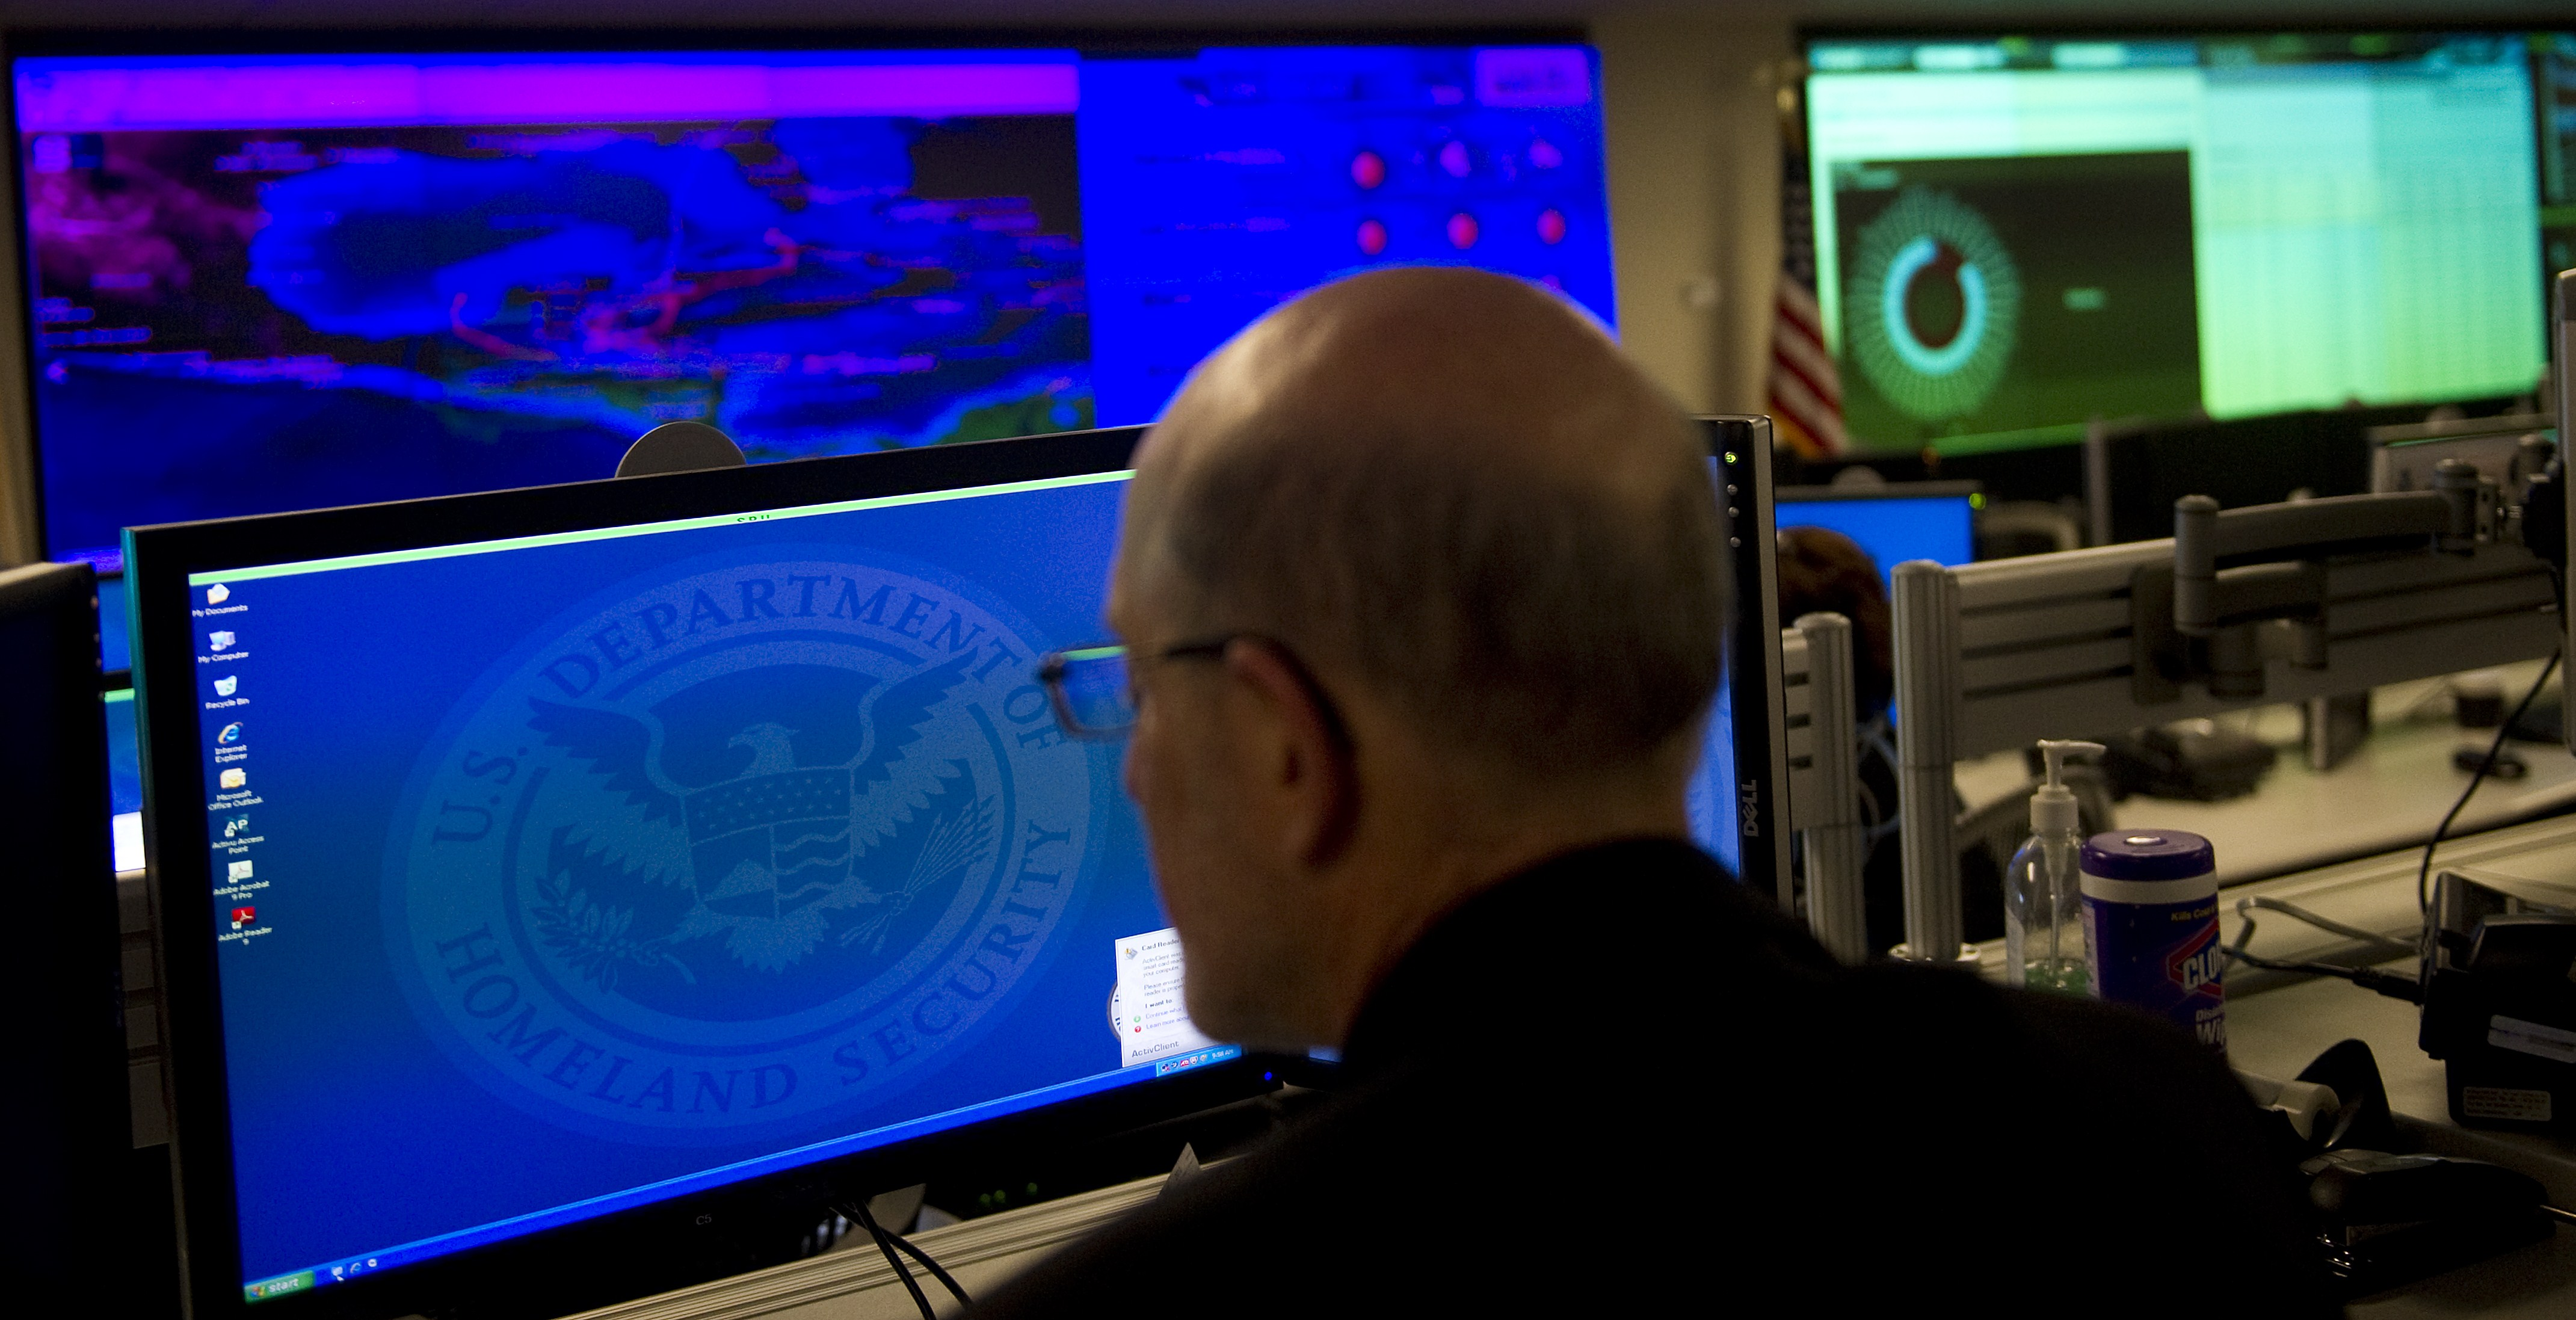 Analyists at the National Cybersecurity & Communications Integration Center (NCCIC) prepare for Cyber Storm III during a media session at their headquarters in Arlington, VA, September 24, 2010. (Photo credit: Jim Watson/AFP)